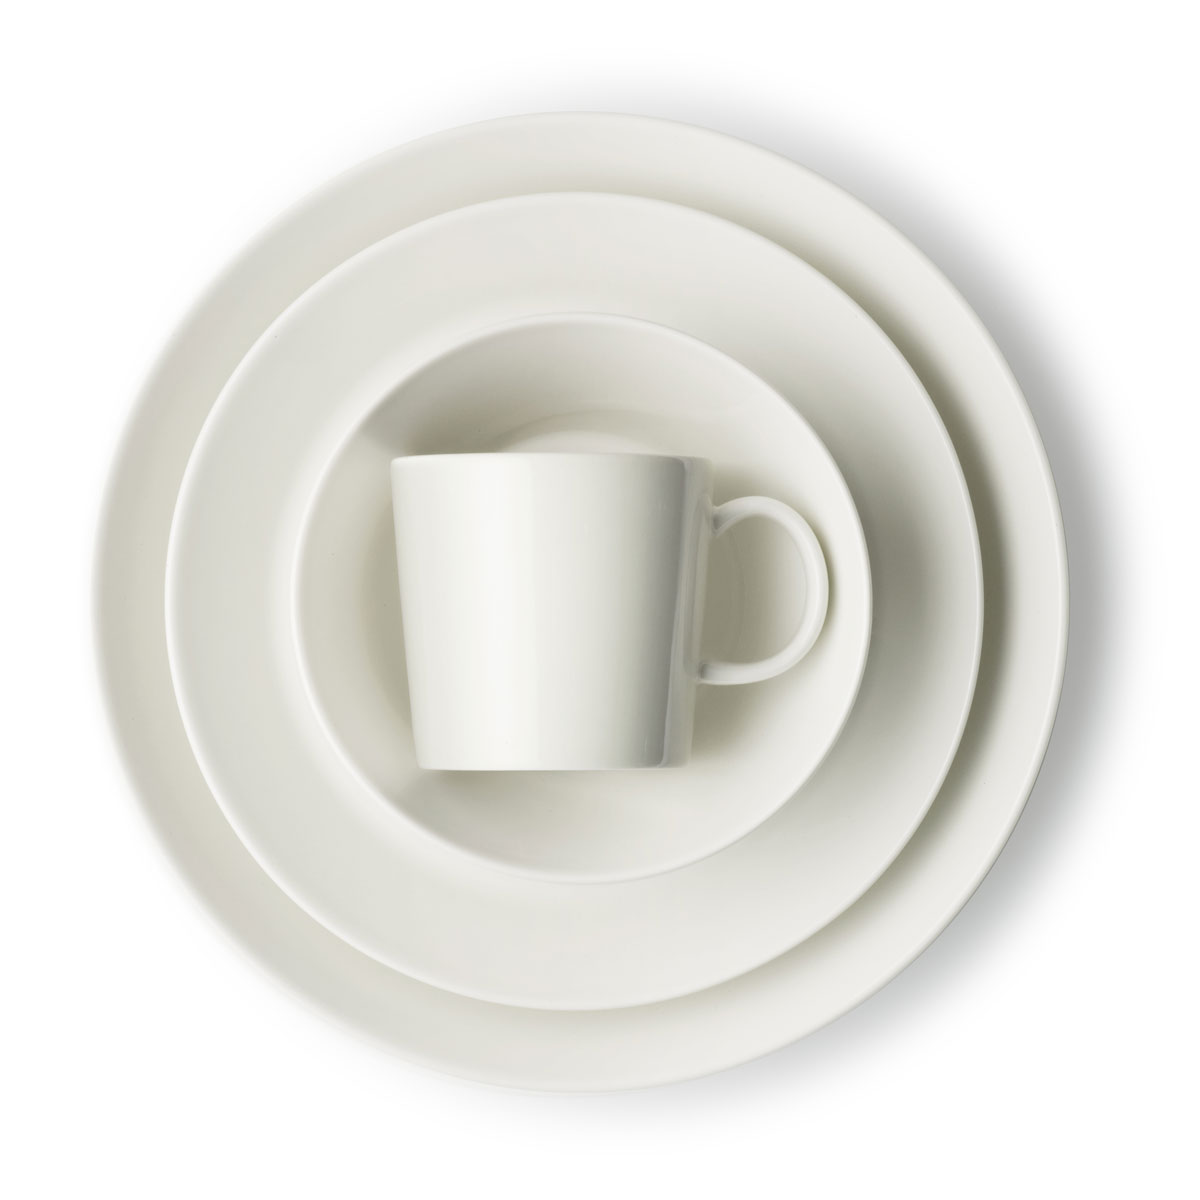 iittala teema white dinner plate iittala teema white dinnerware. Black Bedroom Furniture Sets. Home Design Ideas